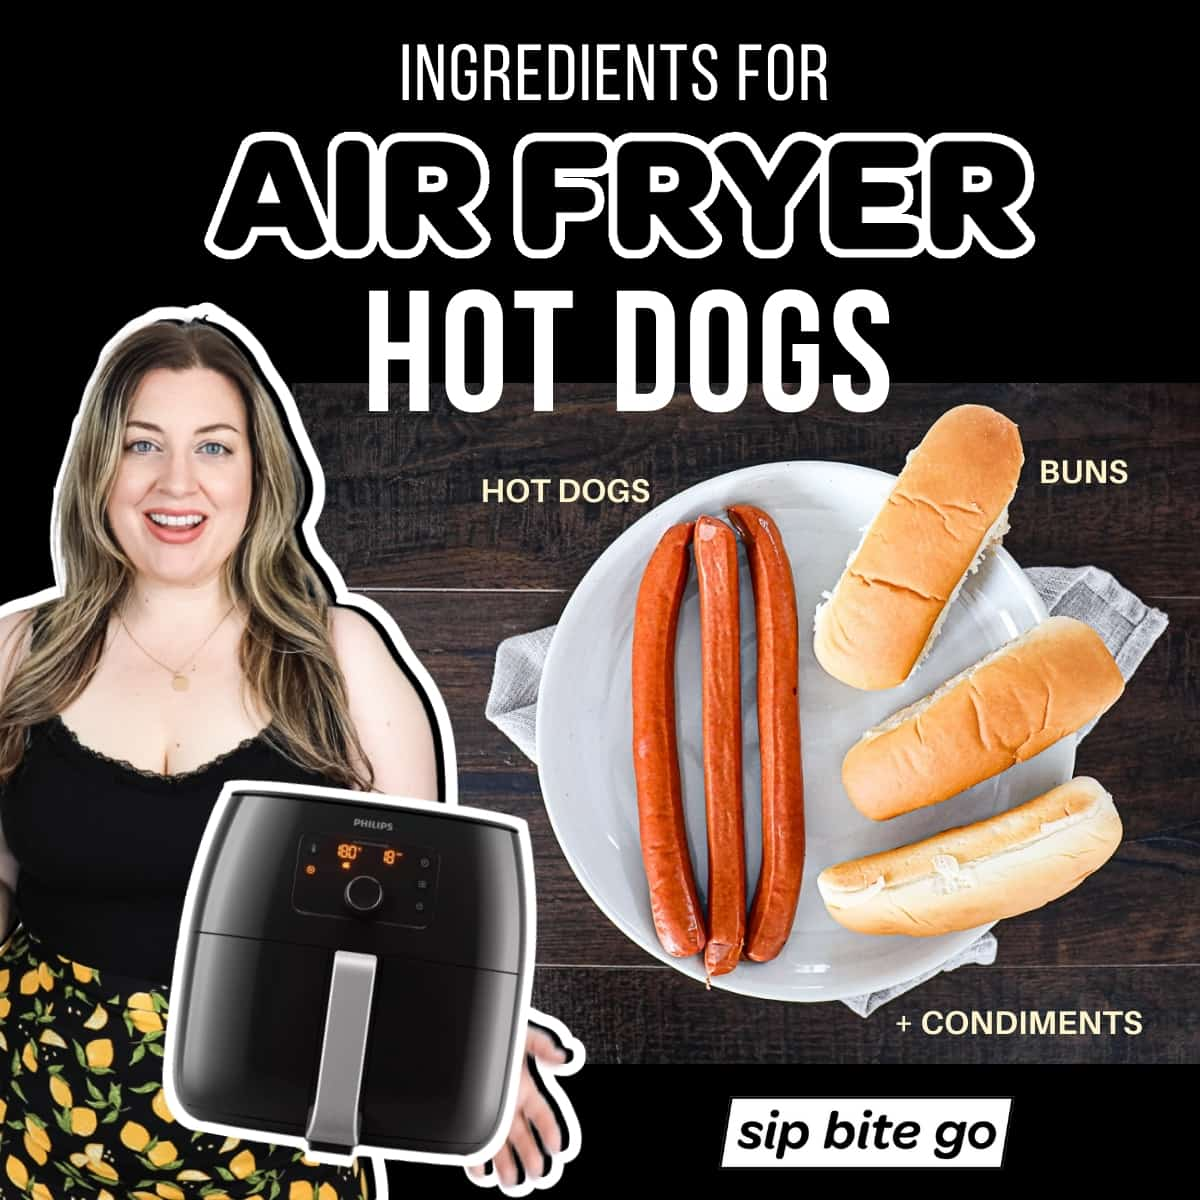 Chart with ingredients for air fryer hot dogs list with captions and air fryer machine.